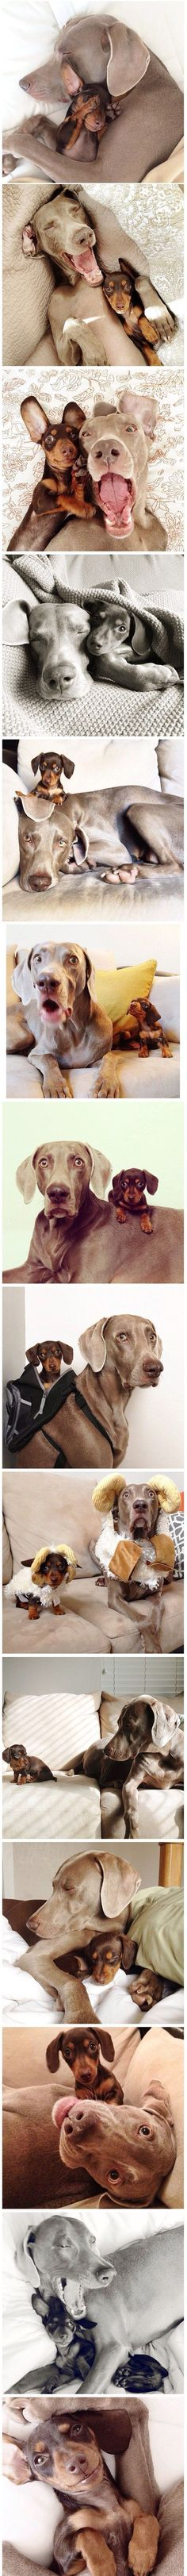 The cutest dog photo shoot I've ever seen - Imgur